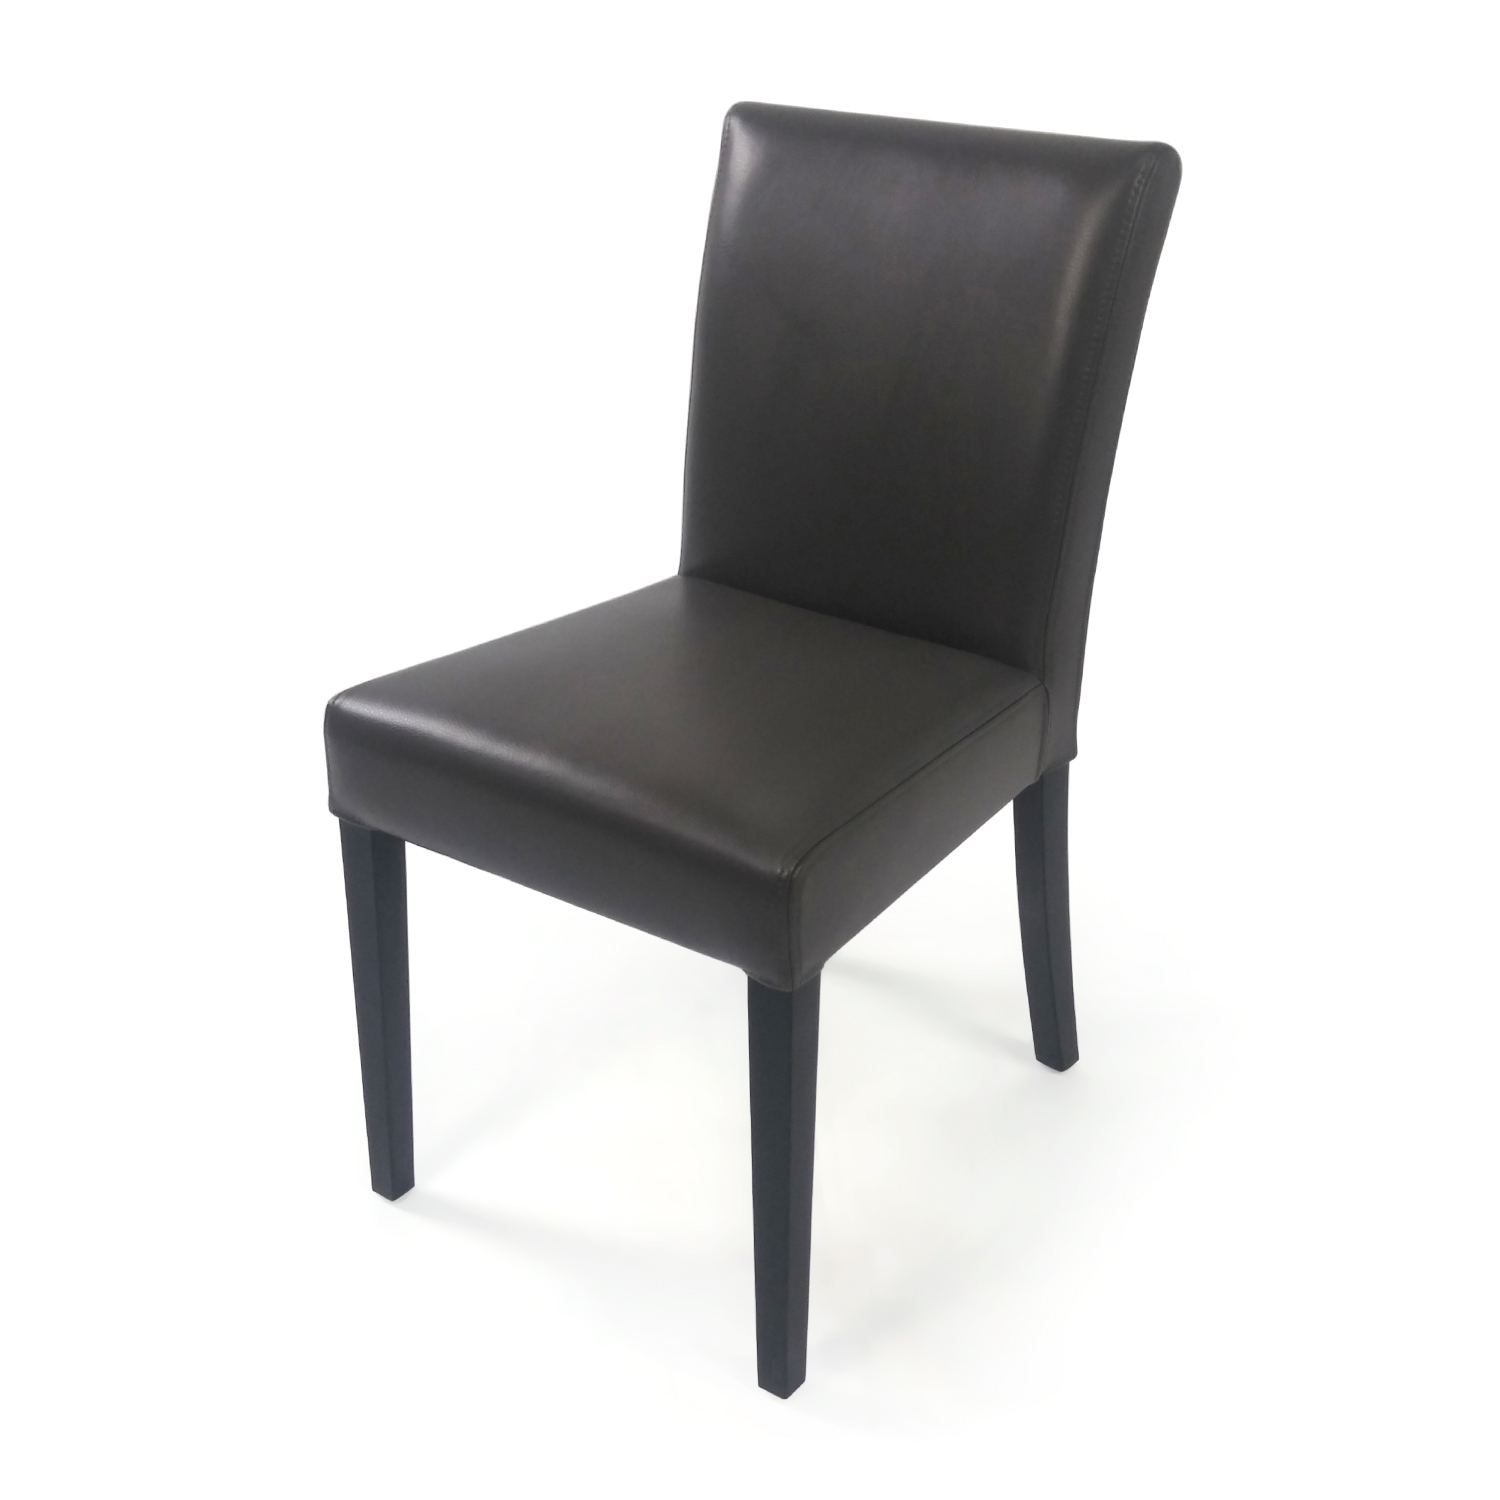 90 OFF  CB2 CB2 Leather Side Chair  Chairs